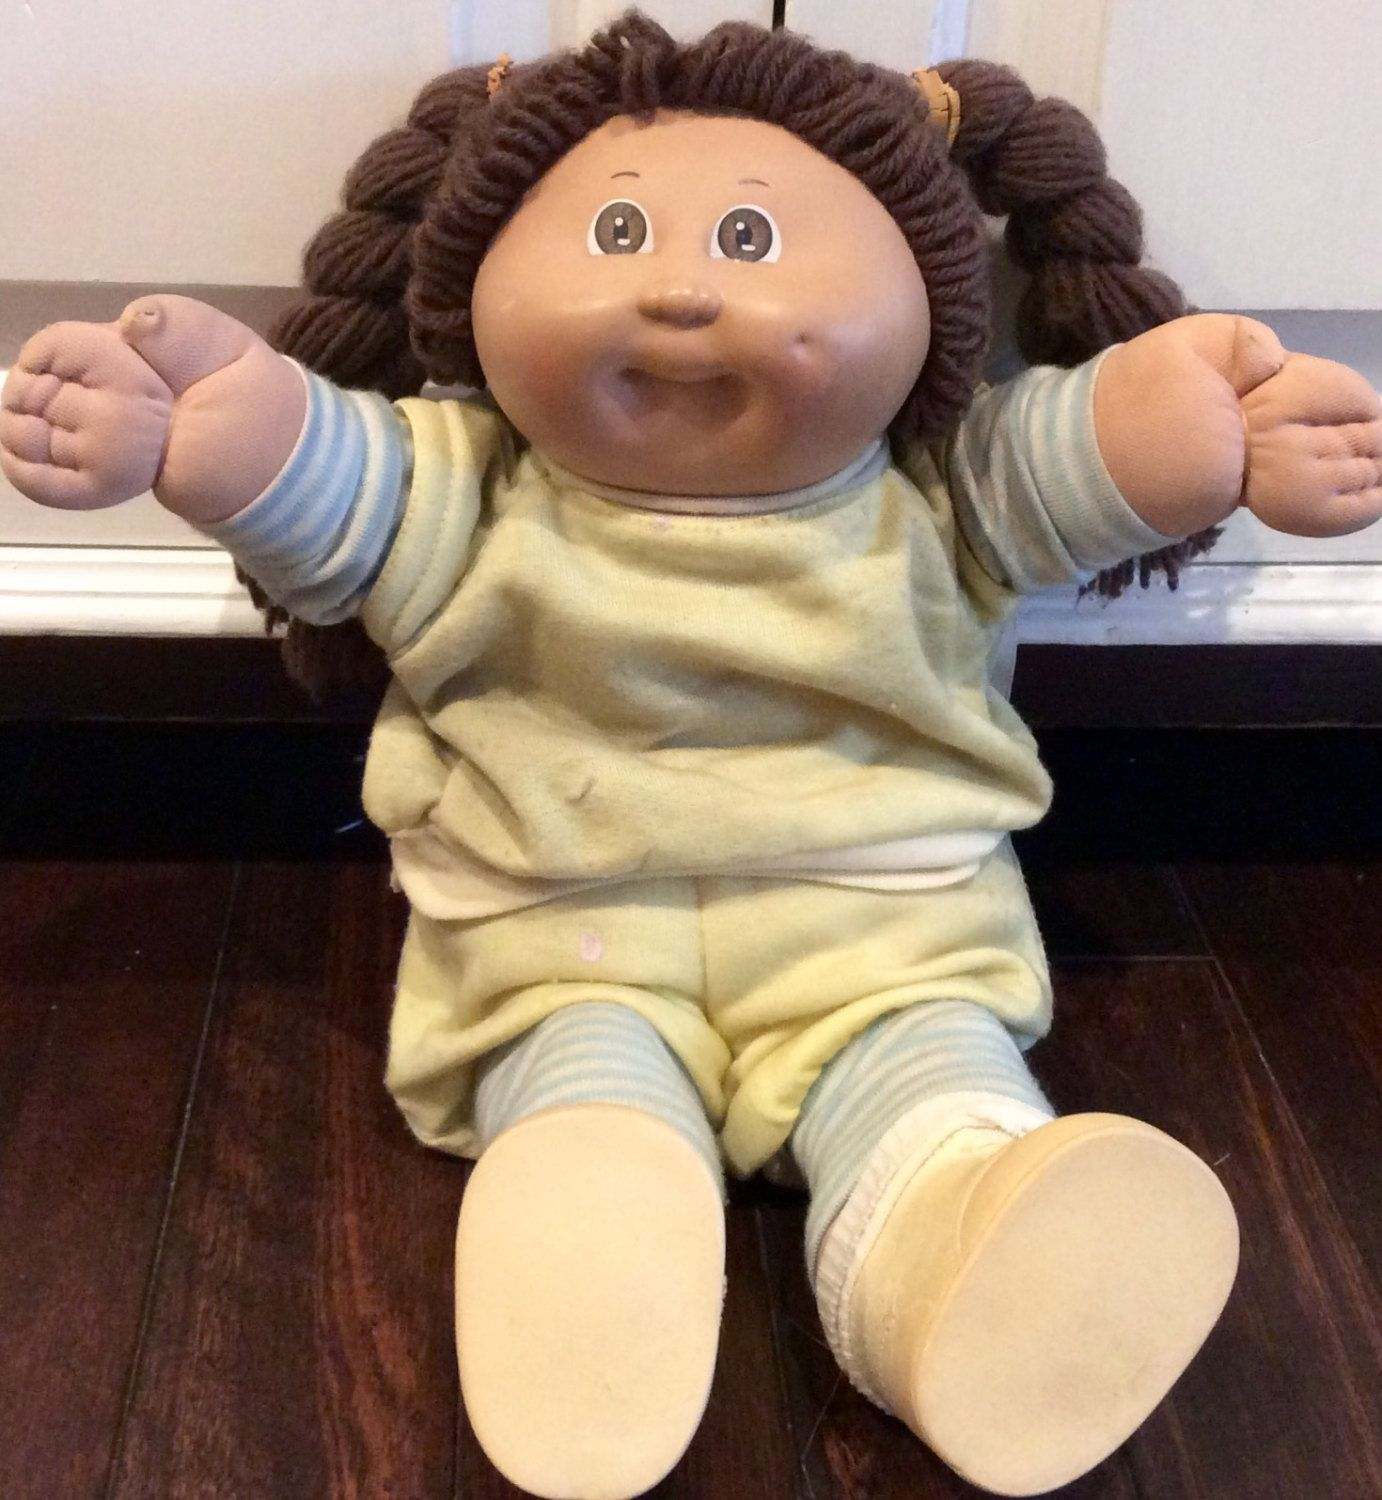 1984 Cabbage Patch Kids Girl Doll With Brown Hair Brown Eyes By Xavier Roberts Vintage Cpk Dolls Coleco Dolls Oaa Cabba Cabbage Patch Kids Kids Girl Dolls